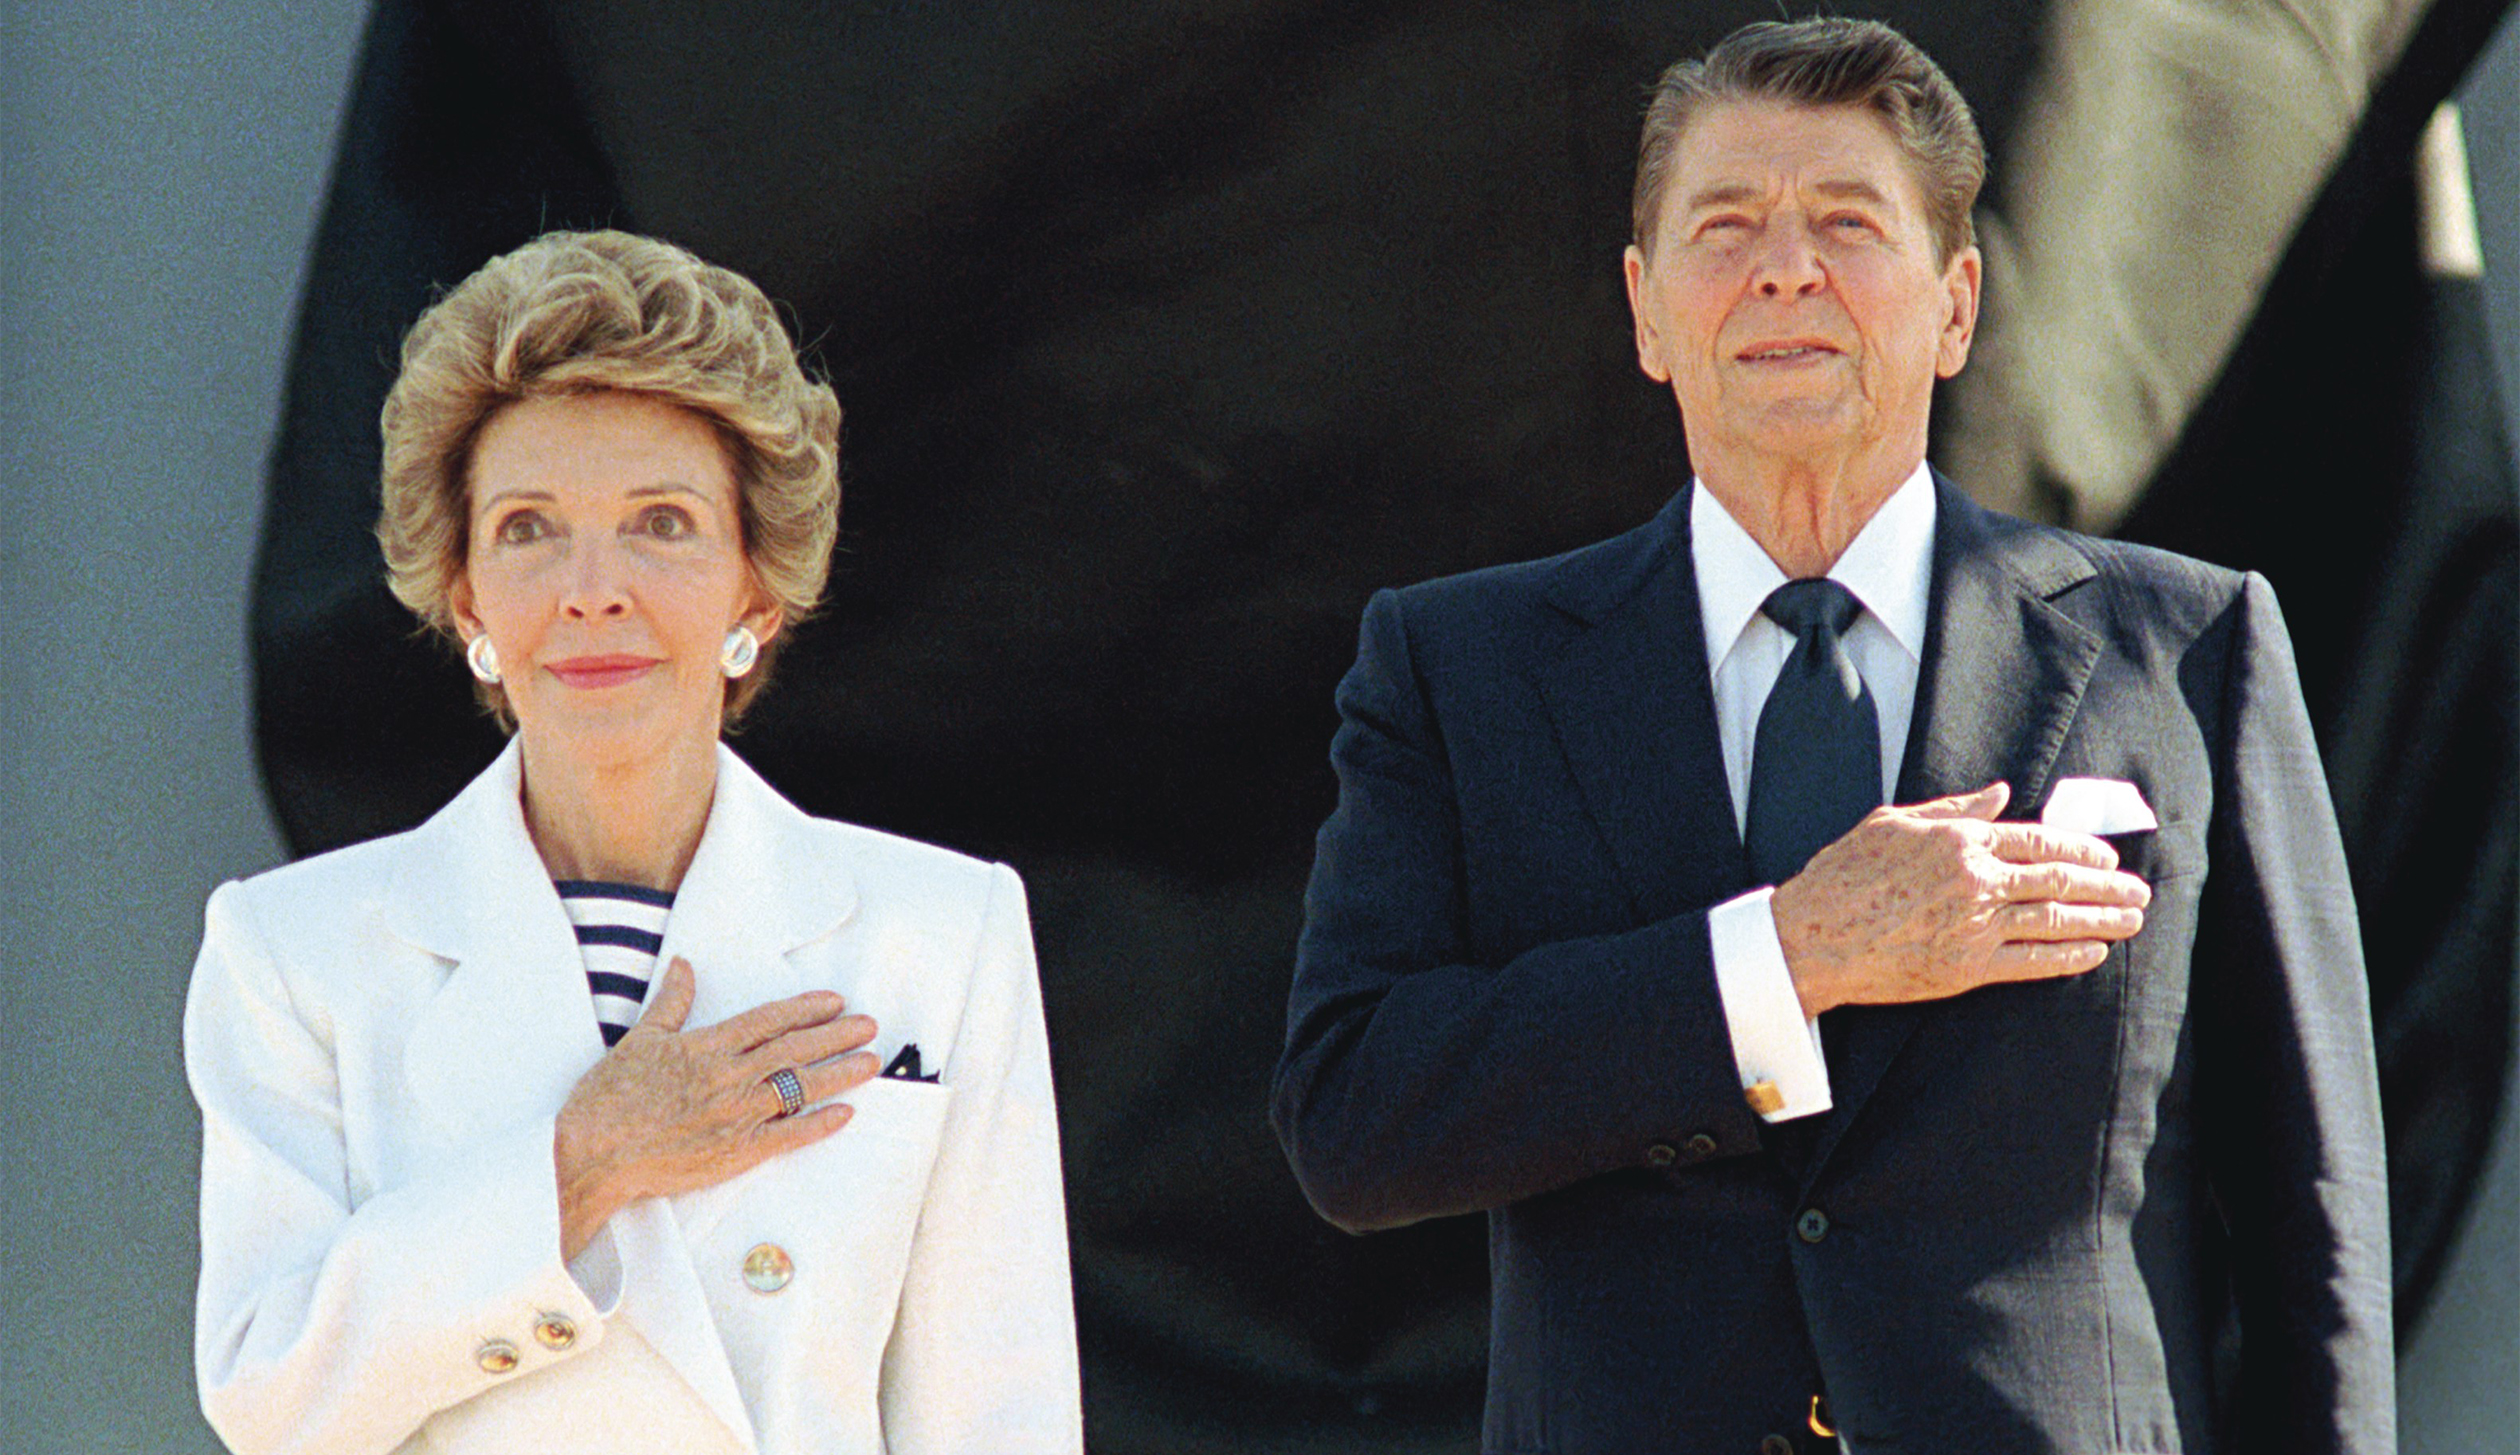 An auction of hundreds of items previously owned by President Ronald Reagan and his wife Nancy pulled in $5.74 million in sales this week.